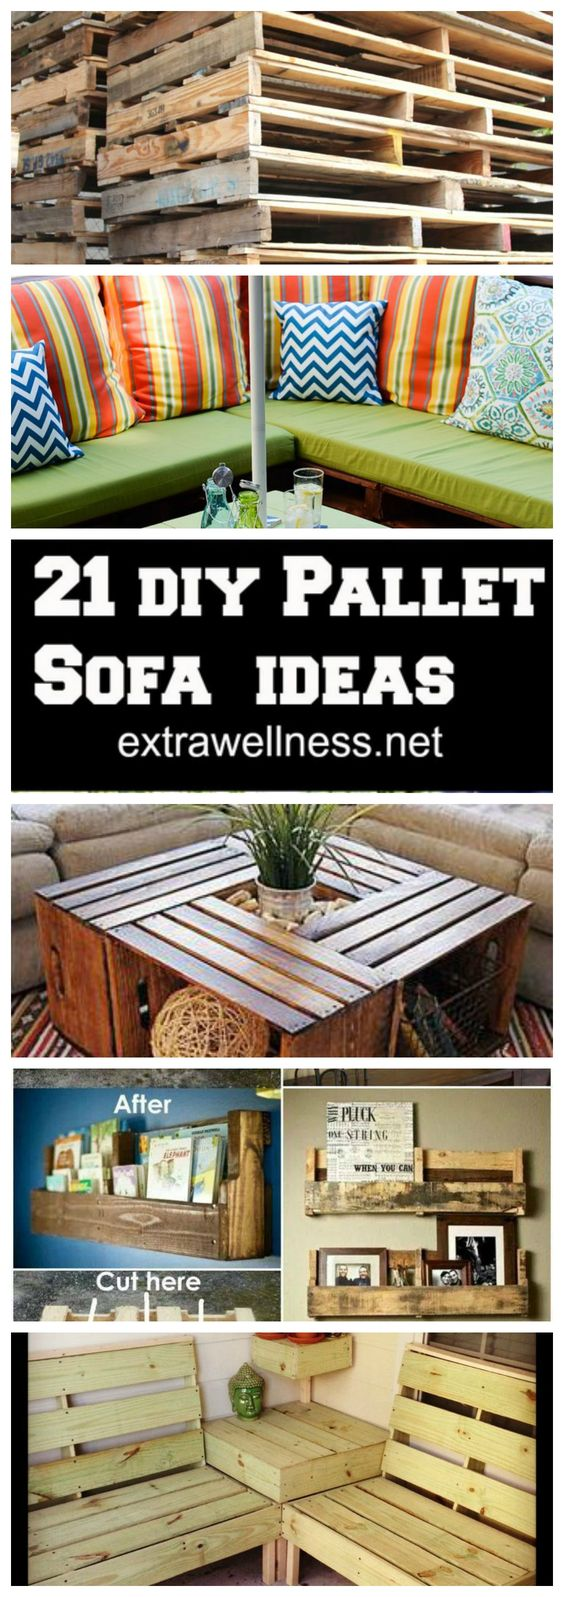 21 Creative DIY Pallet Furniture Hacks :: upcycle your old Pallet into several cozy sofa couch ideas that will help fill your home and yard with style and personality